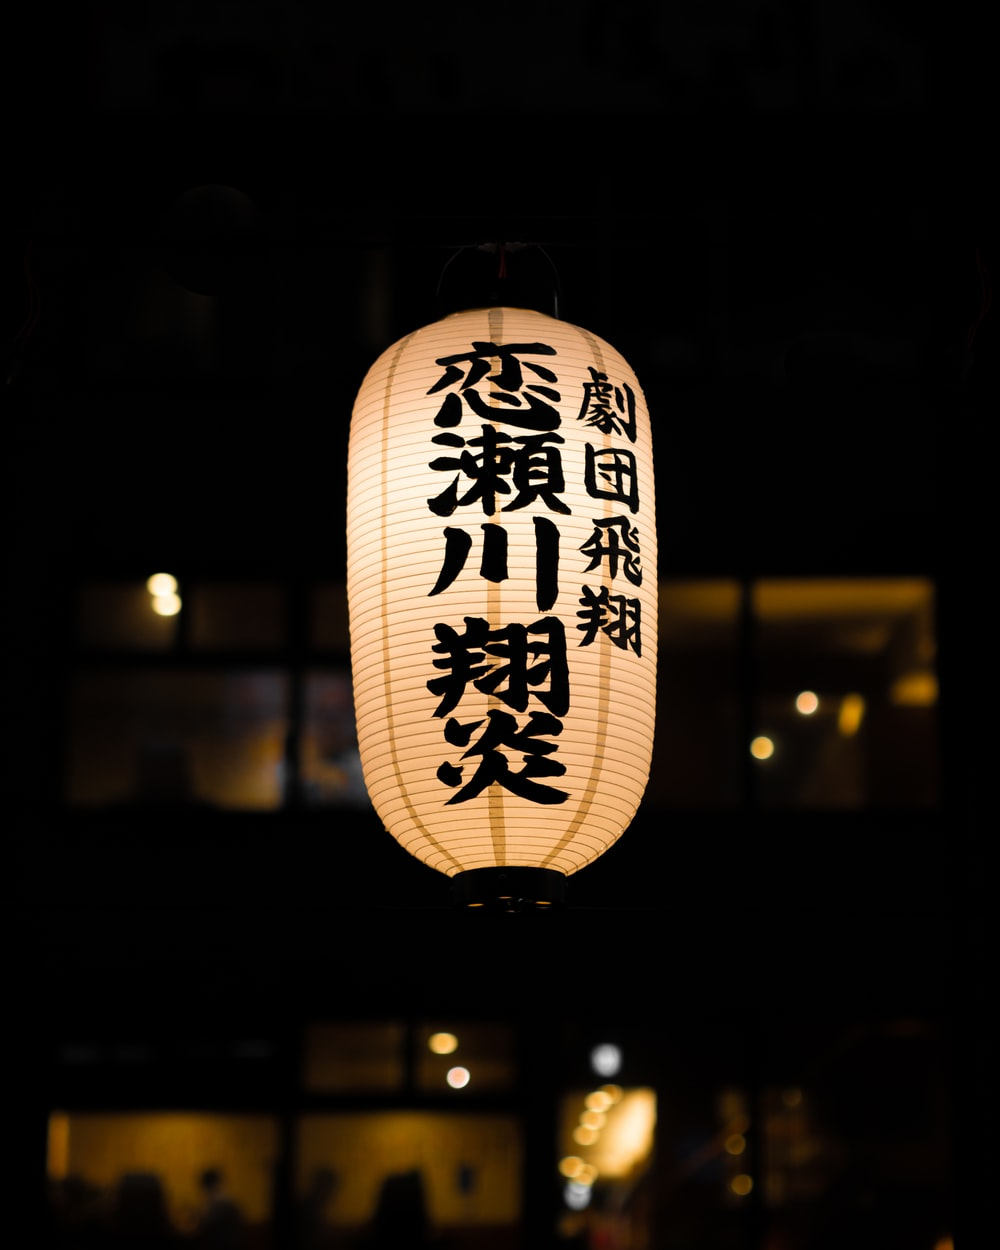 turned-on pendant lamp with non-English text